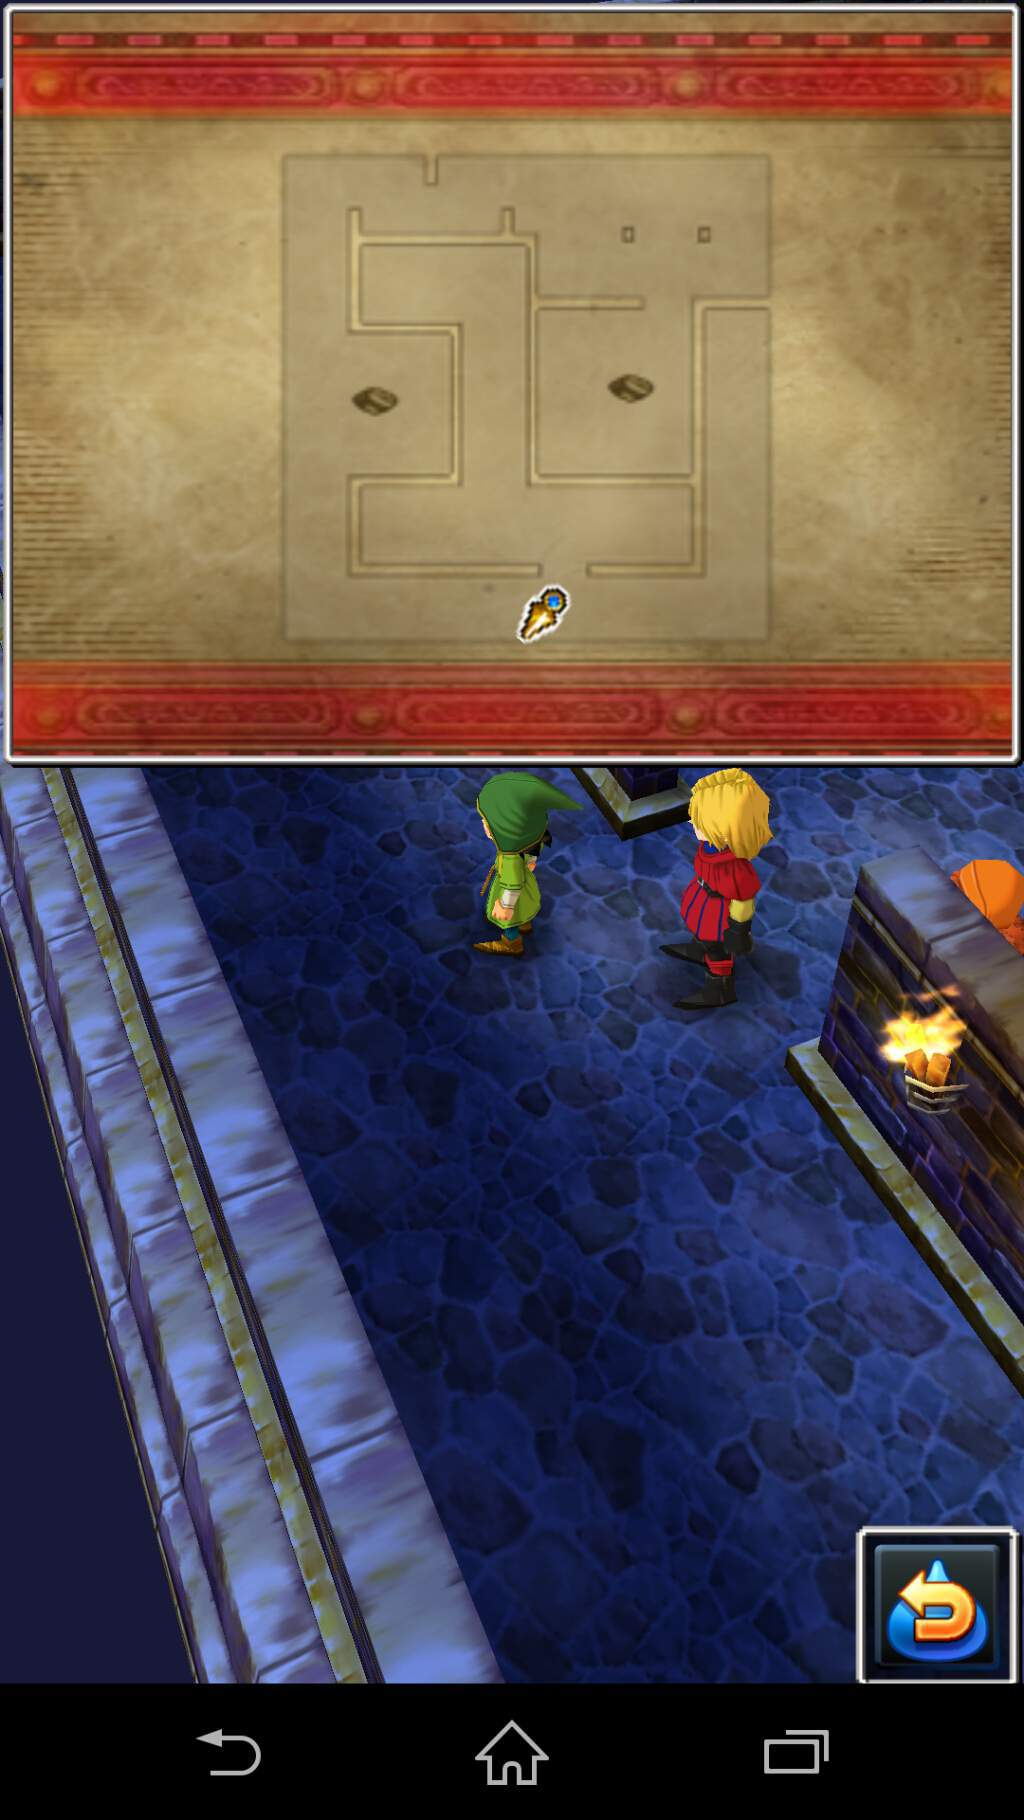 dq7-vii-iphone-android-ipad-ios-review-27